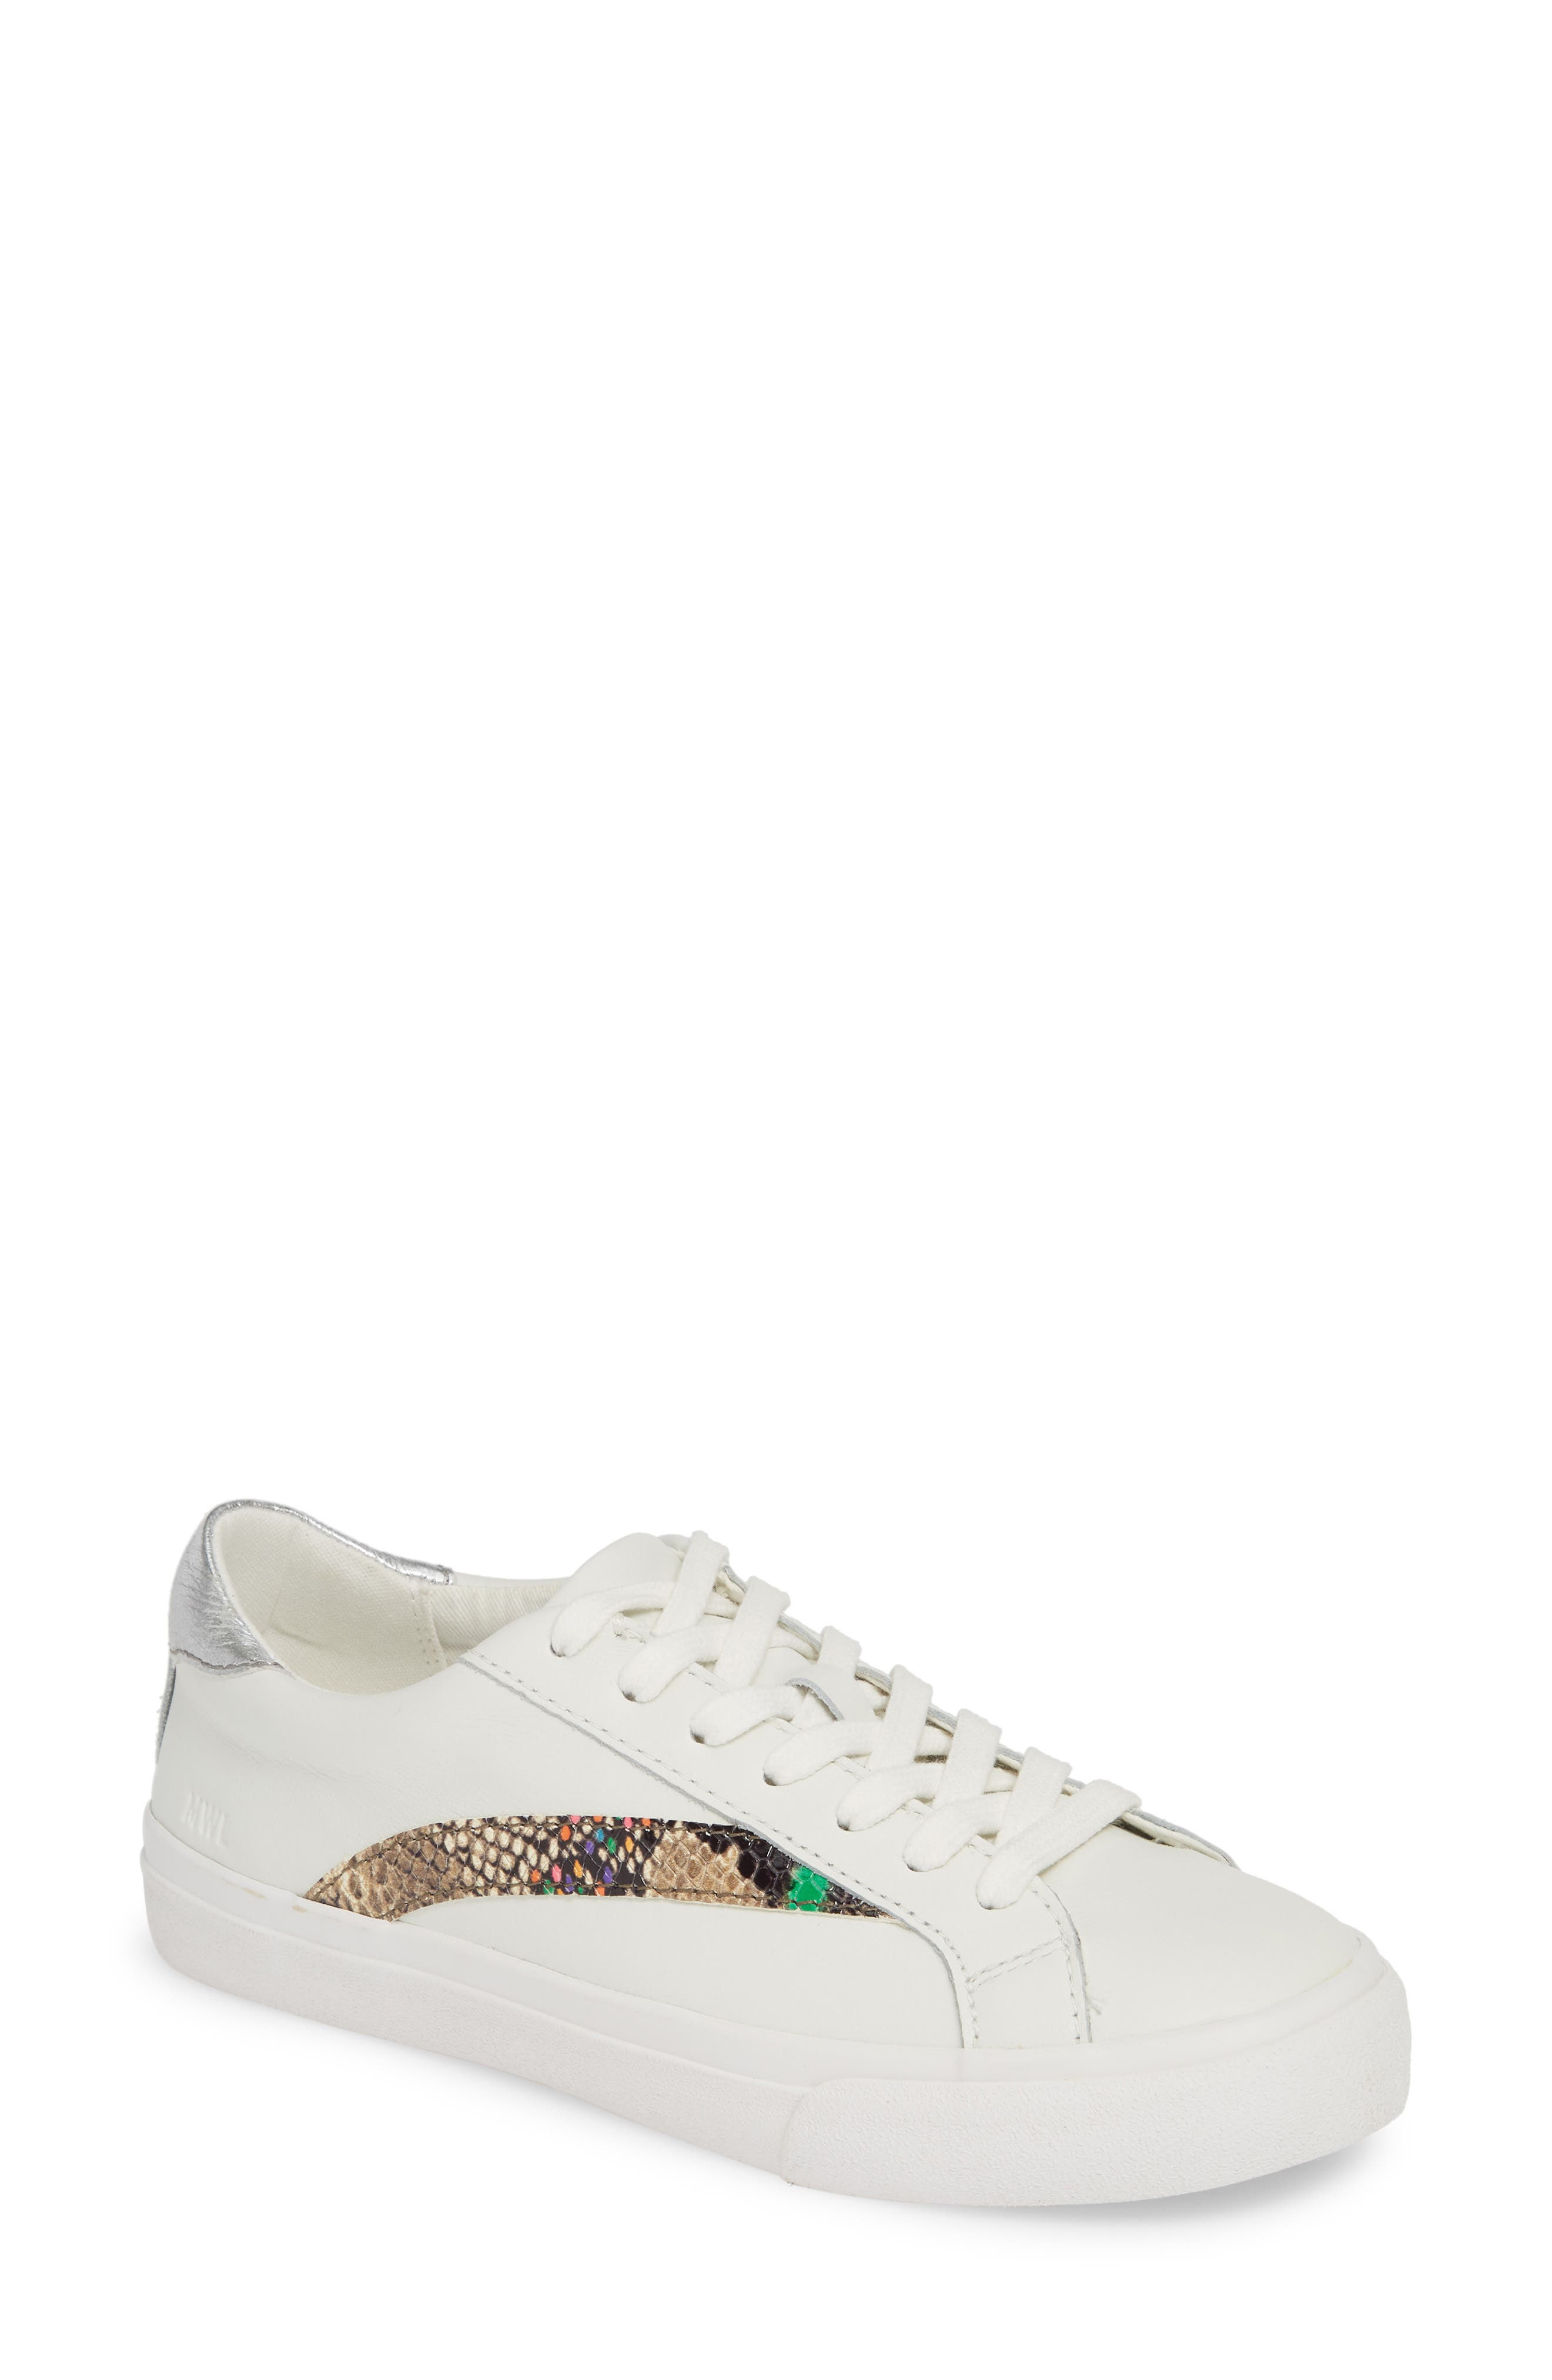 MADEWELL Delia Sneaker, Main, color, LIGHT UMBER MULTI